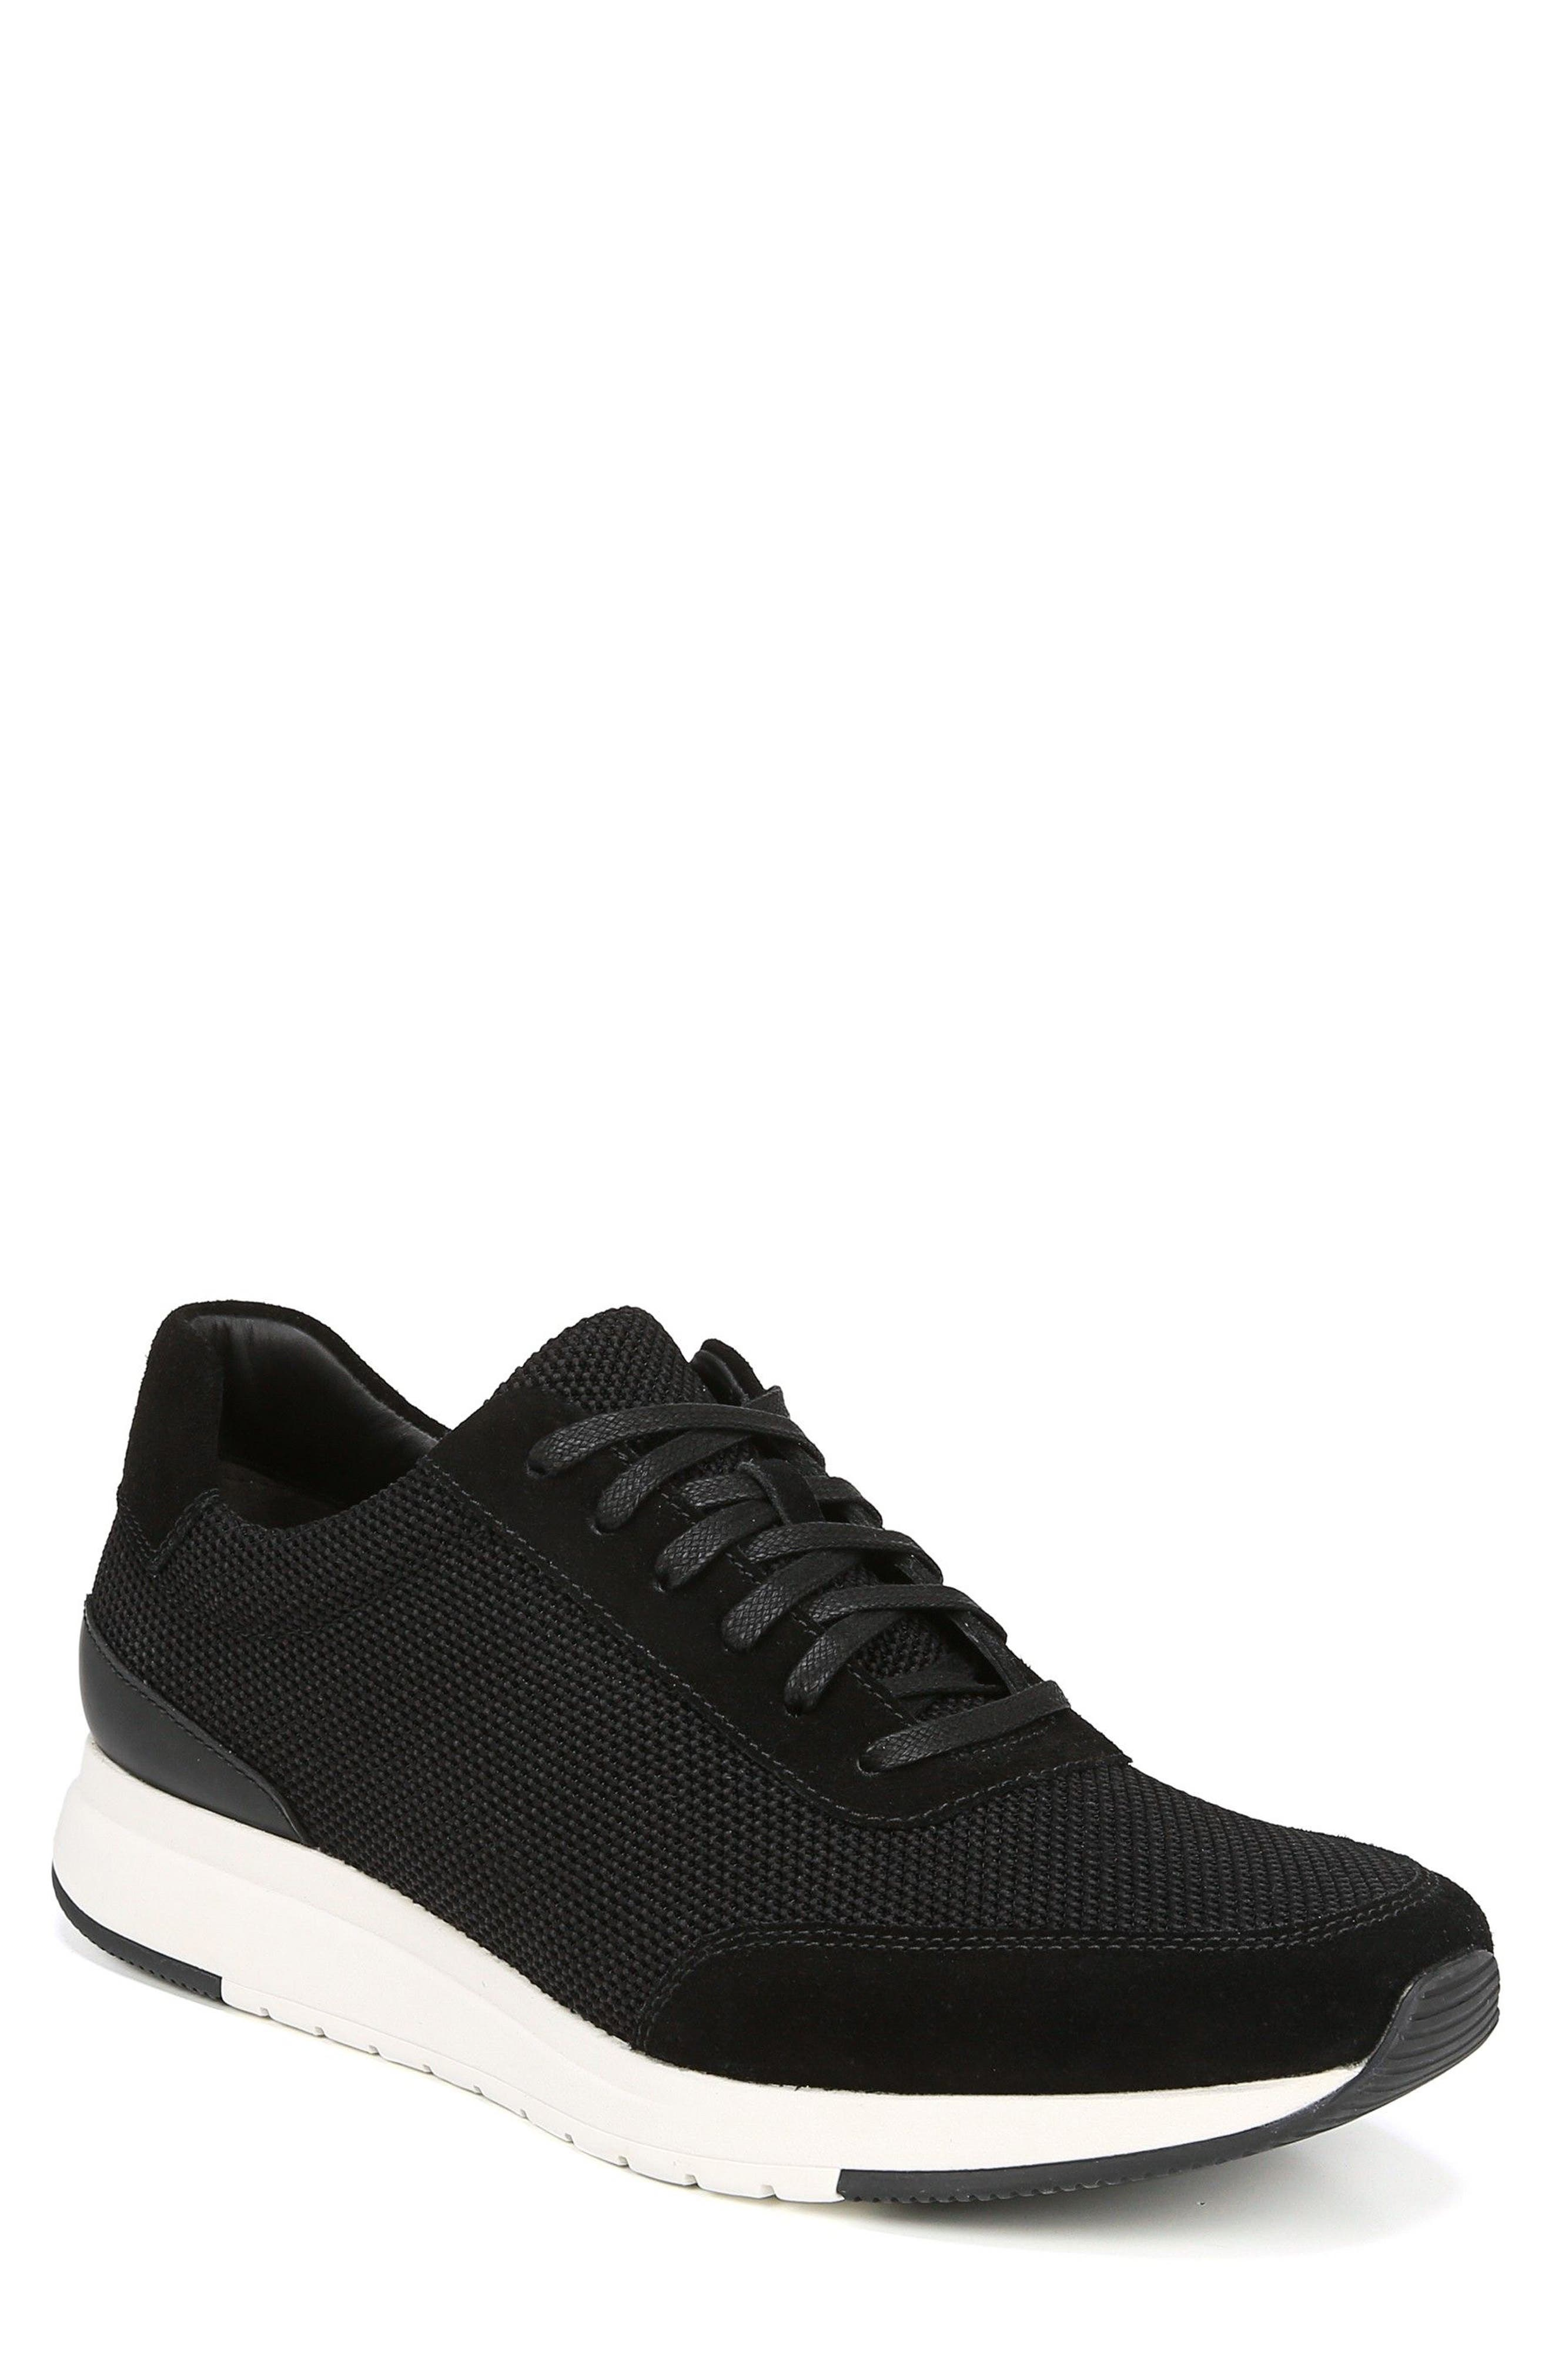 Payton Mesh Sneaker,                             Main thumbnail 1, color,                             BLACK